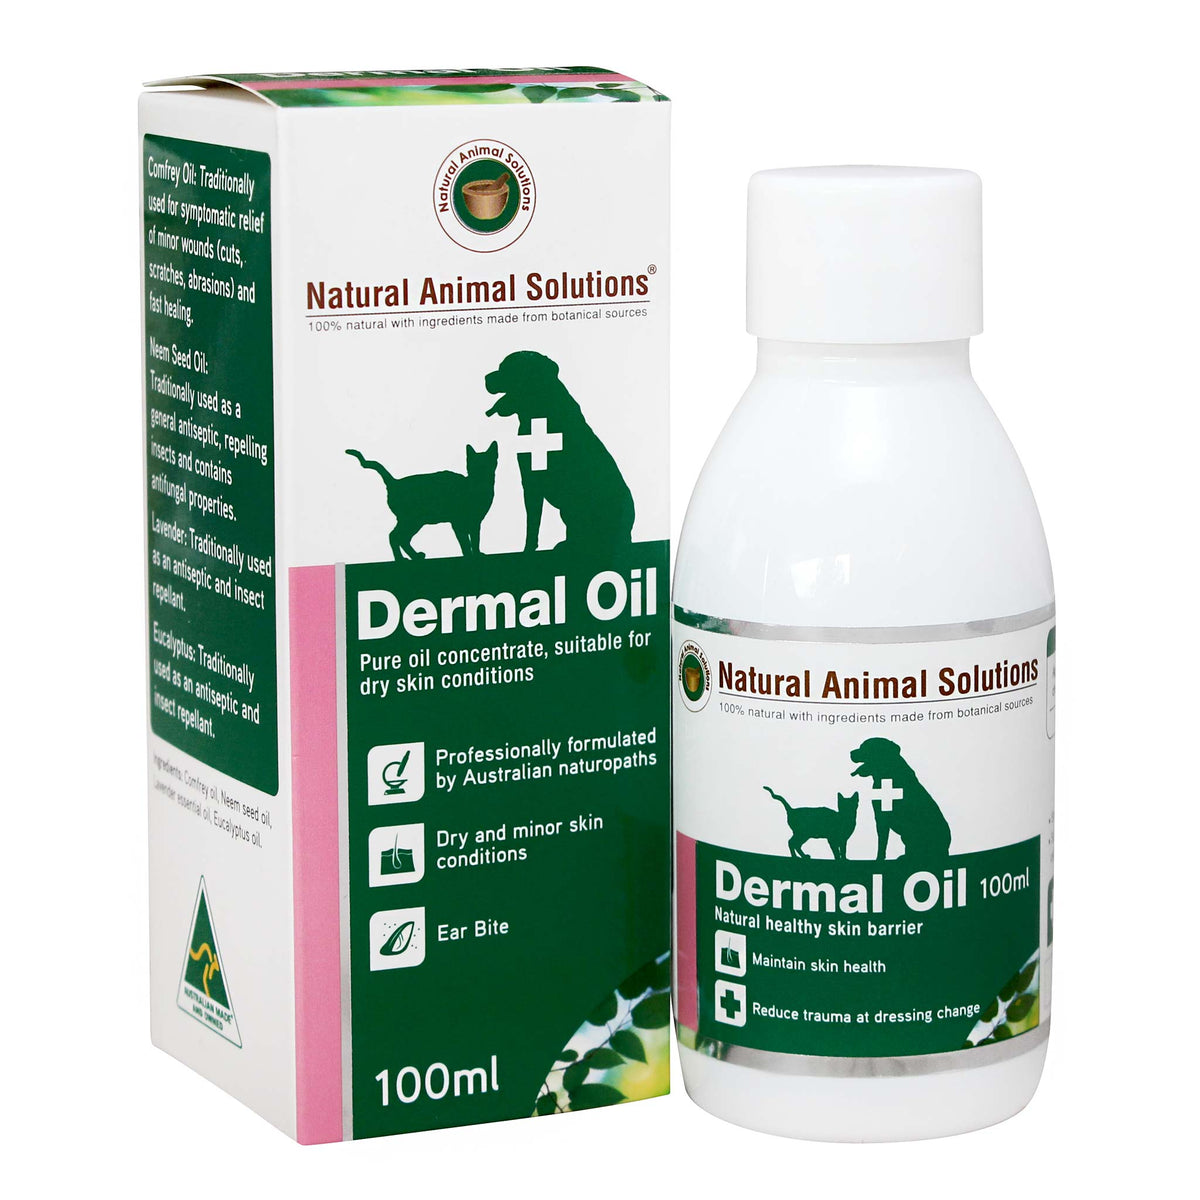 Natural Animal Solutions Dermal Oil Concentrate 100mL